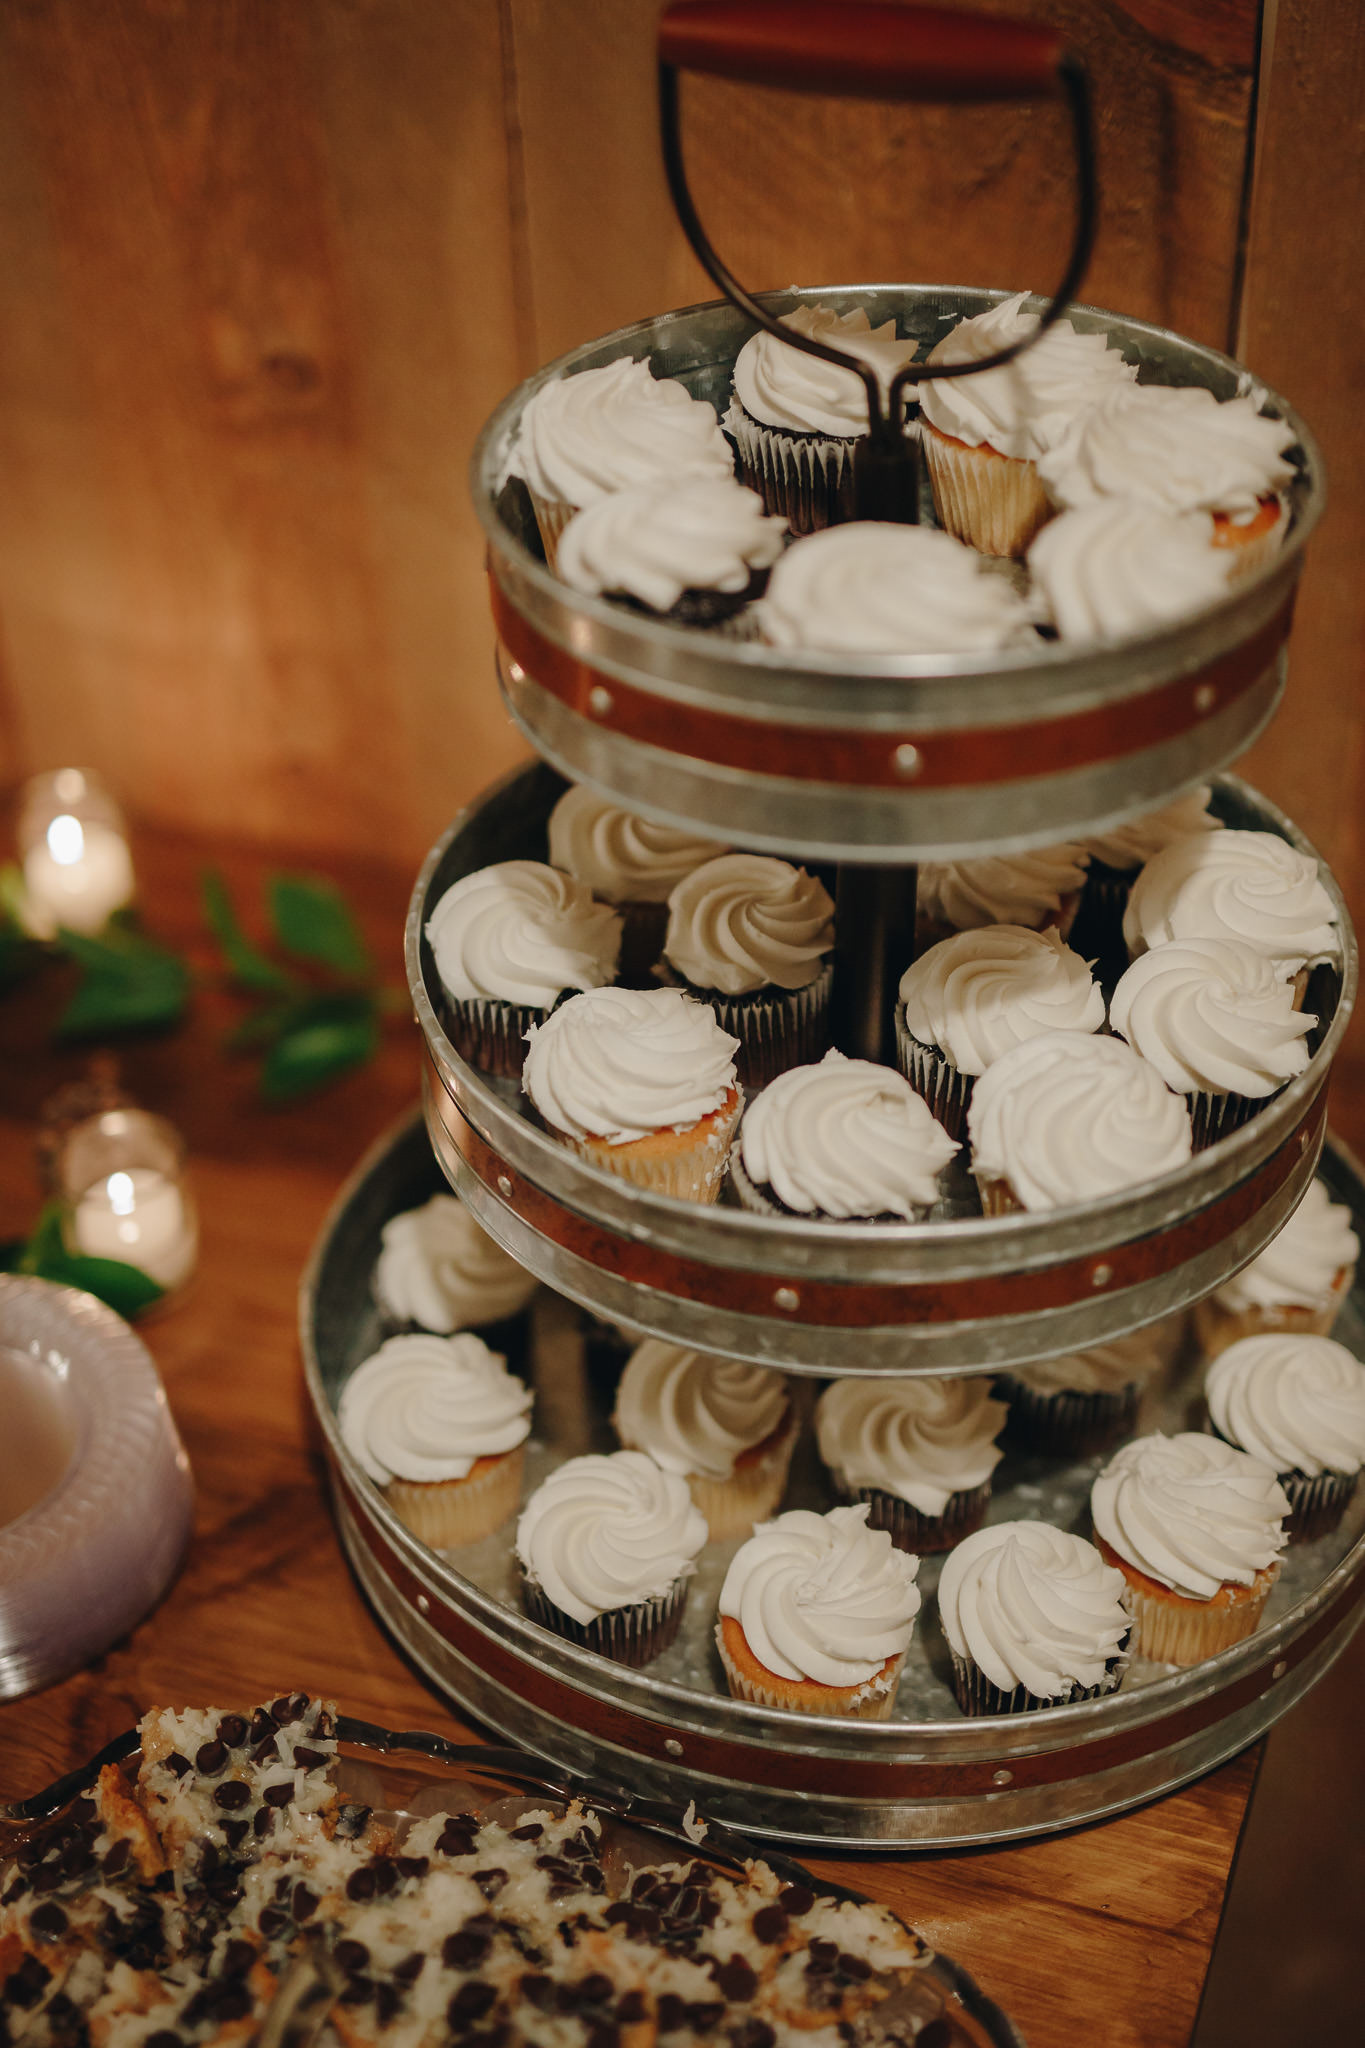 Cupcakes at a dessert wedding reception in Minneapolis